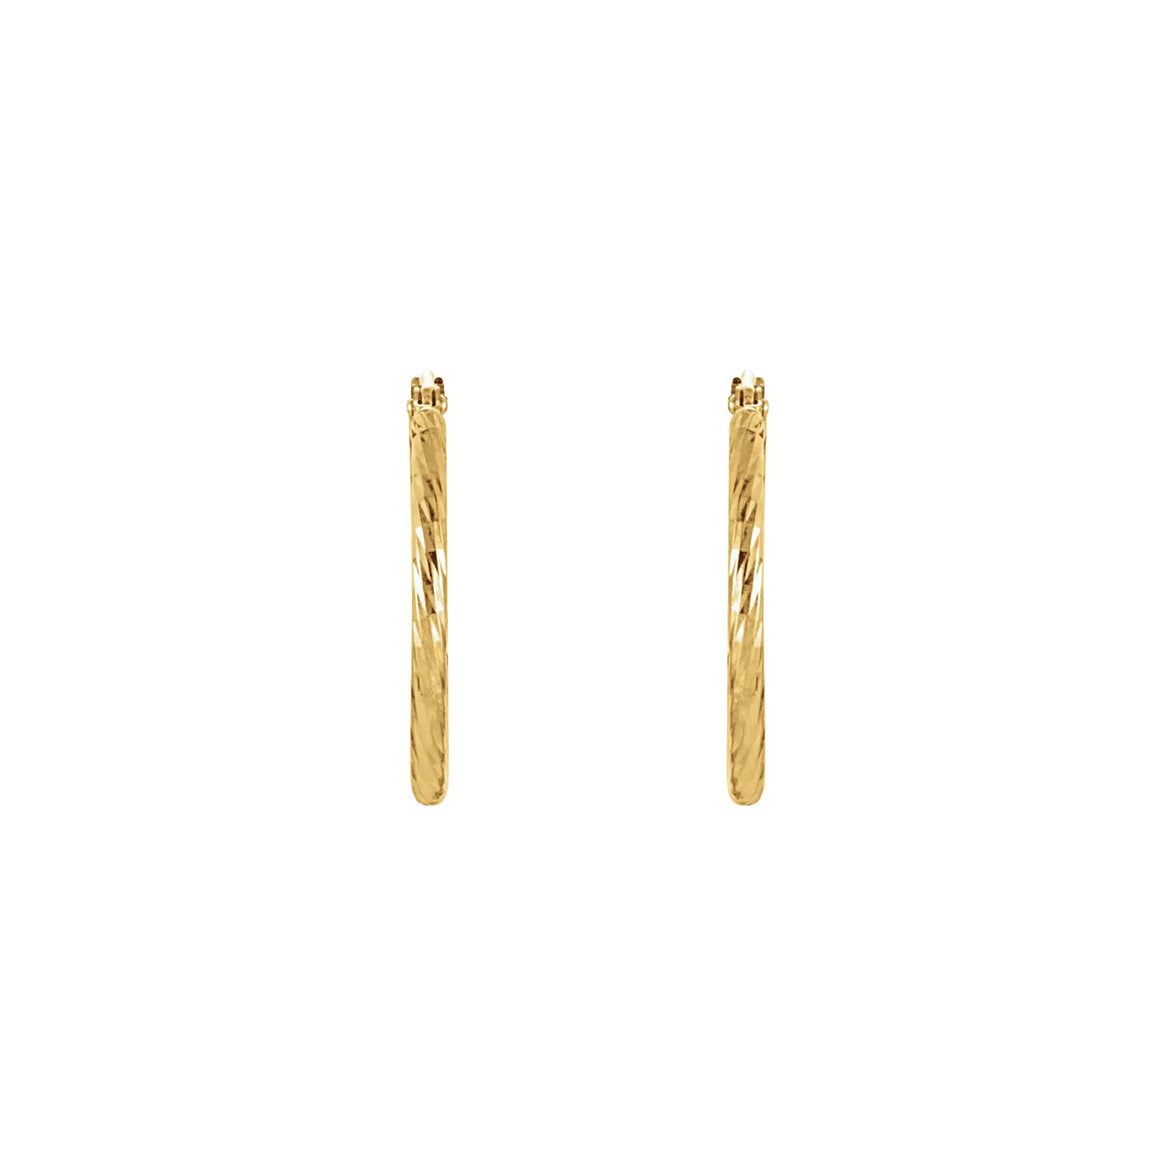 14K Yellow Gold 25.5 mm Diamond-Cut Hoop Earrings